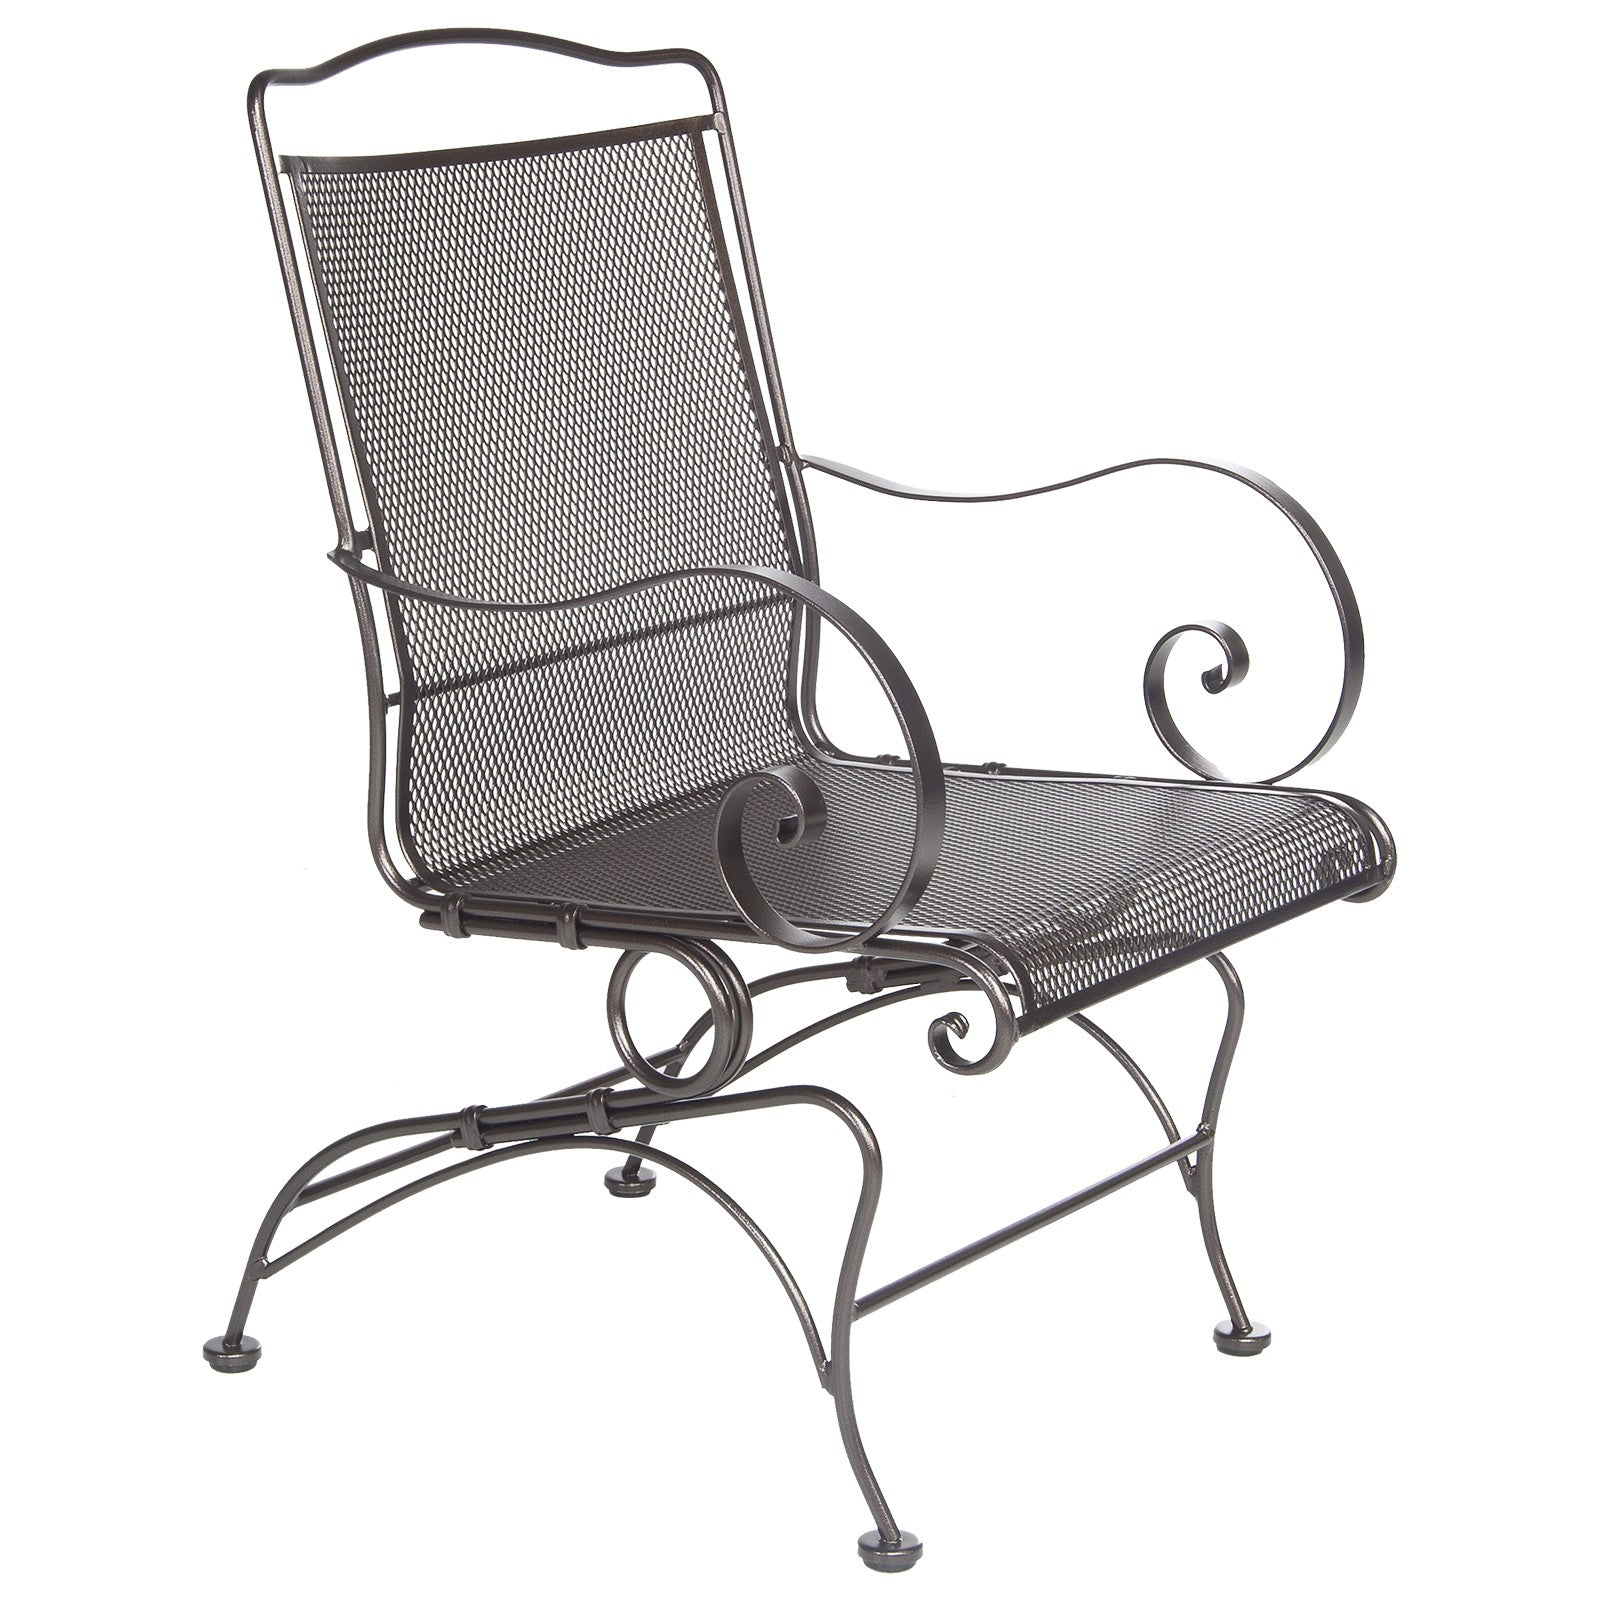 Avalon Spring Base Outdoor Patio Dining Arm Chair - 4374-CB-SP08 - Outdoor Furniture, Indoor Furniture & Upholstery Store Spokane - Jacobs Custom Living